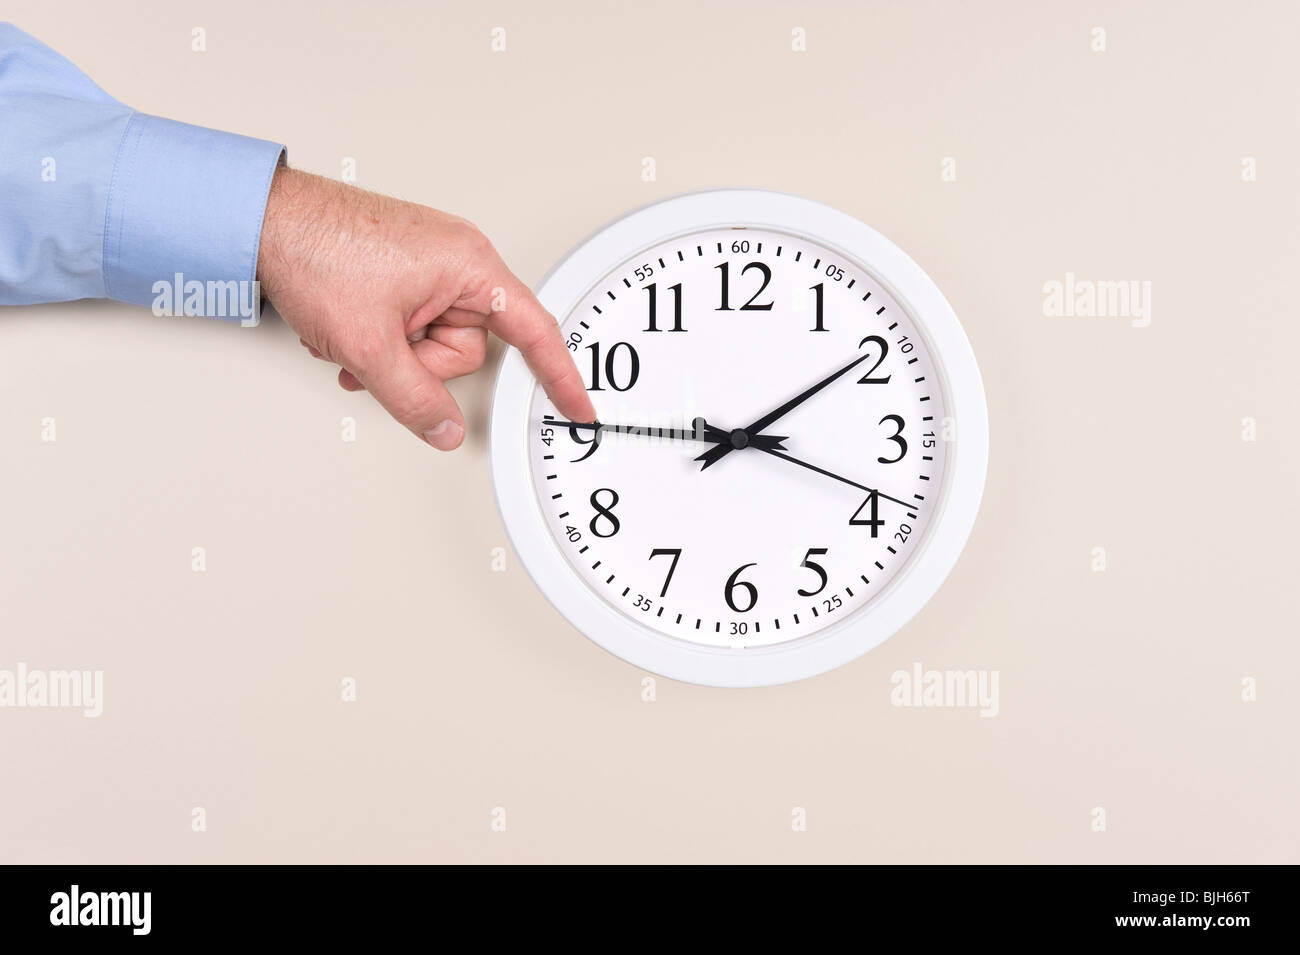 A man uses his finger to push back the time on a clock to daylight savings time - Stock Image